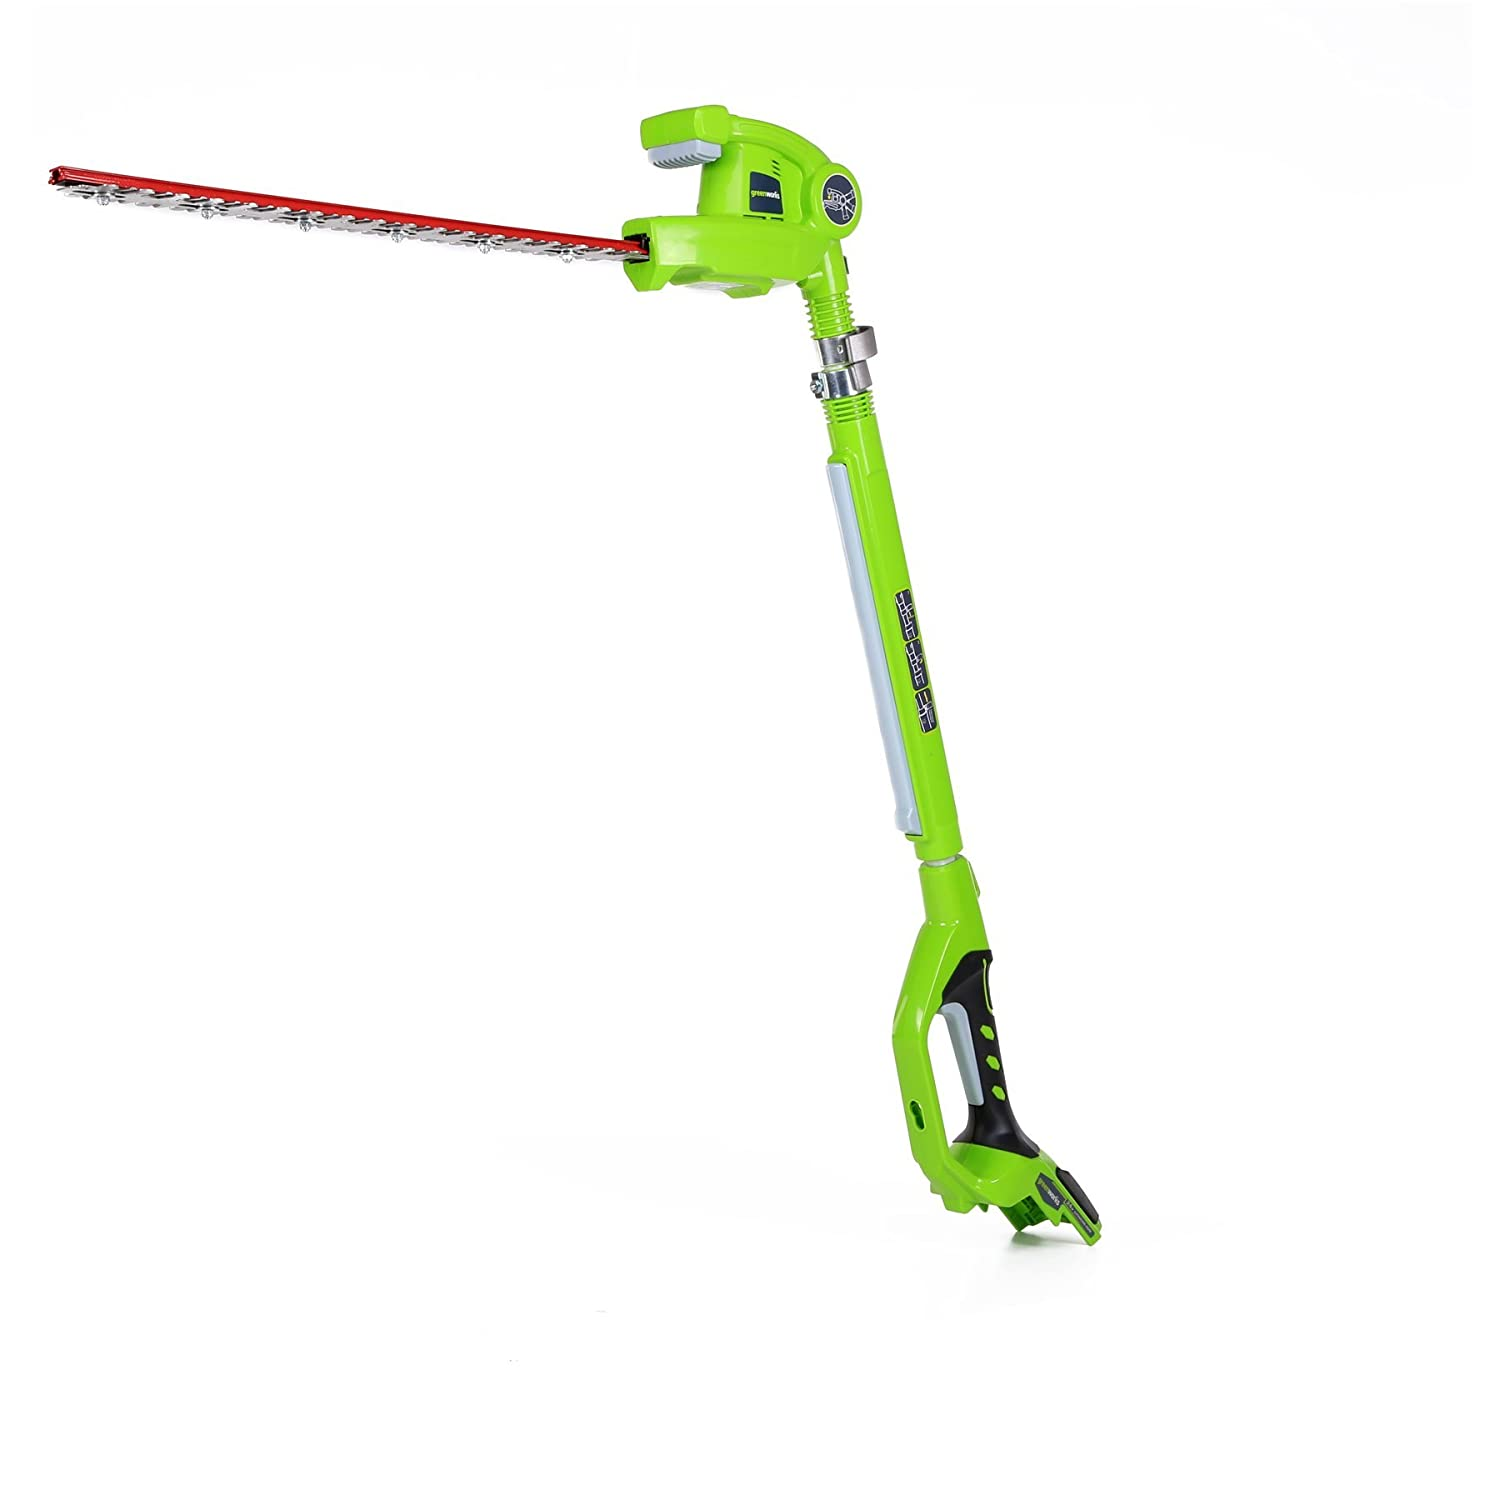 Greenworks 20-Inch 24V Cordless Pole Hedge Trimmer, Battery Not Included 2300002 Renewed